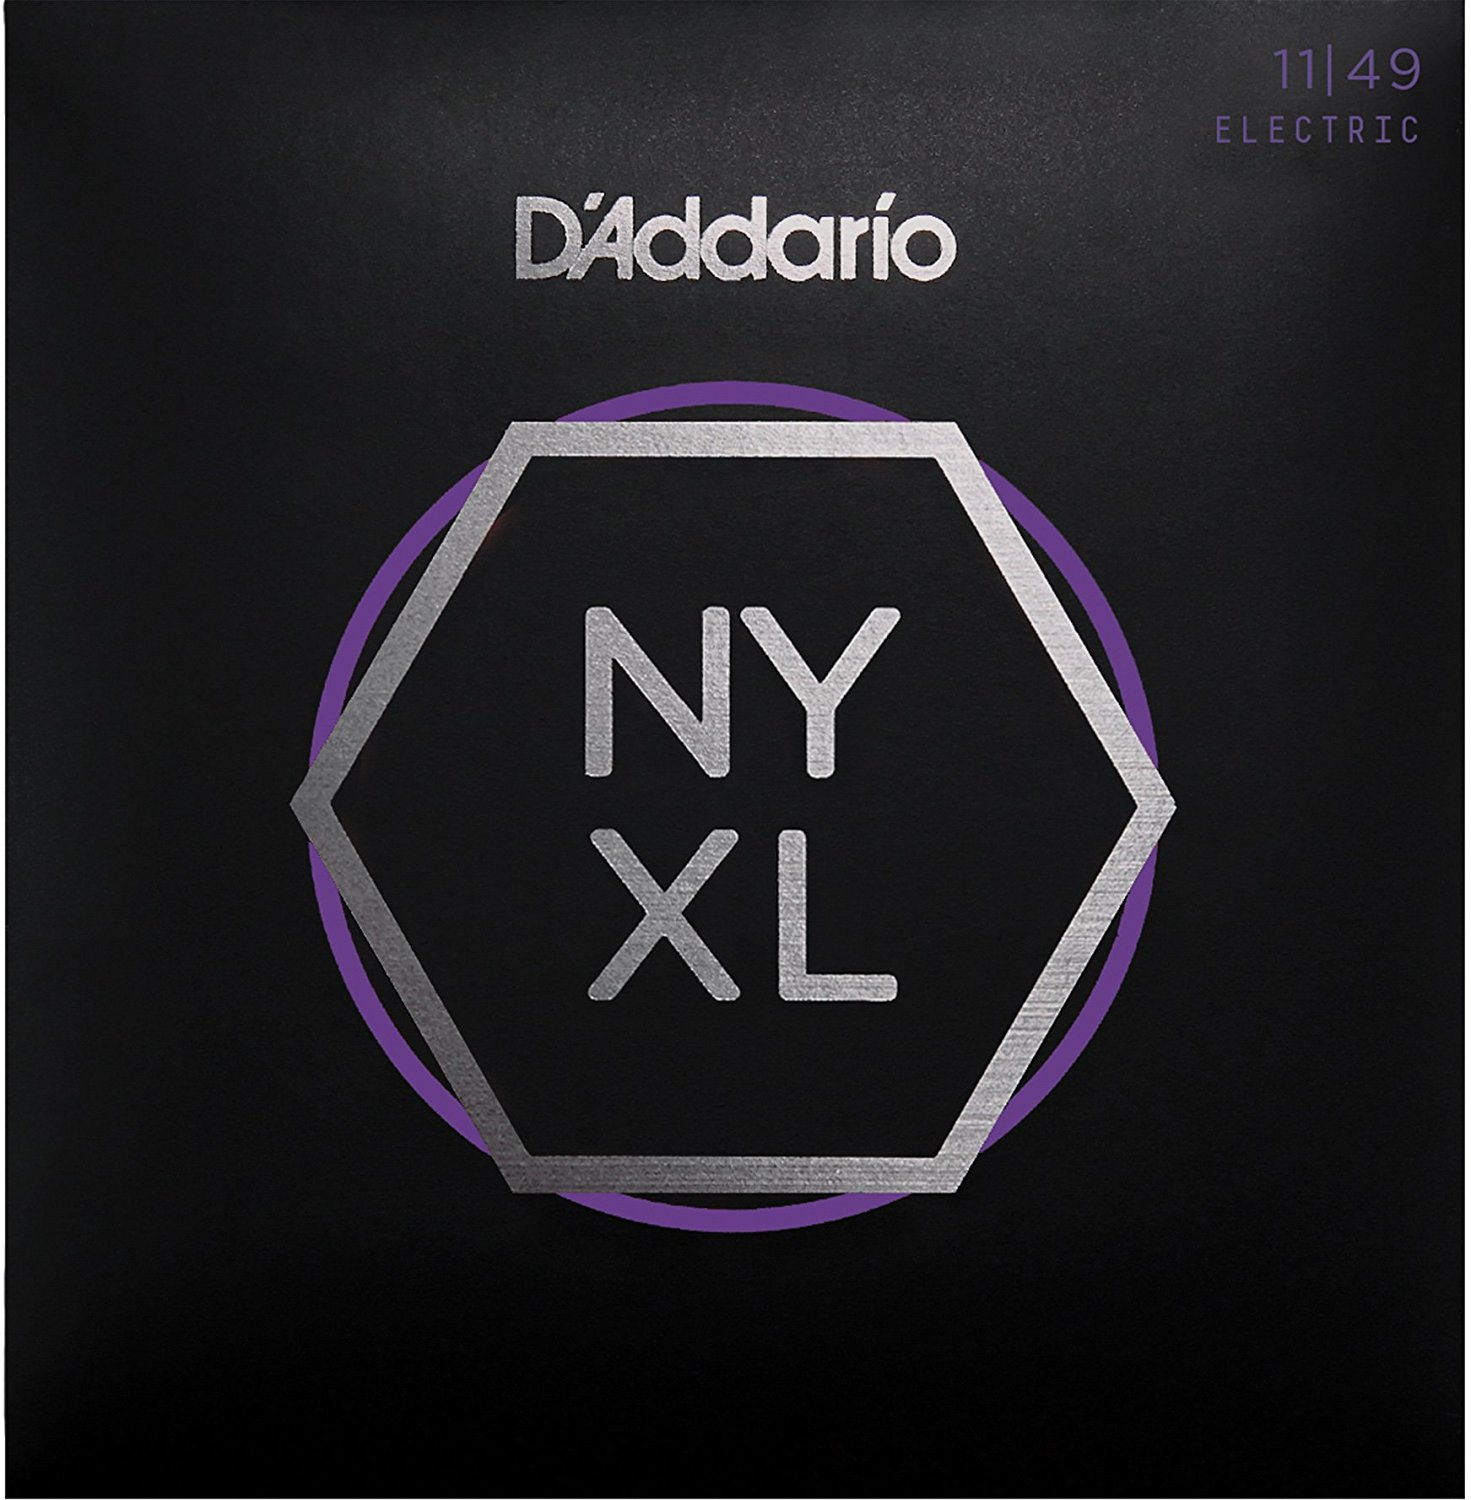 D Addario NYXL1149 Nickel Wound Electric Guitar Strings, Medium, 11-49